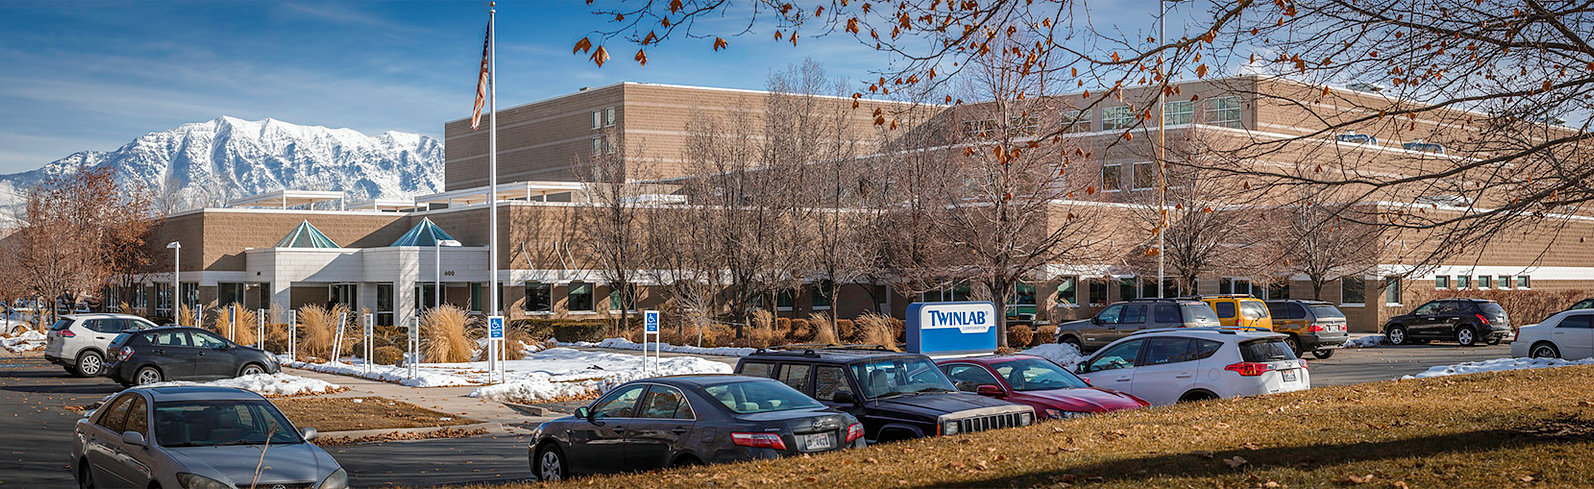 twinlab manufacturing facility